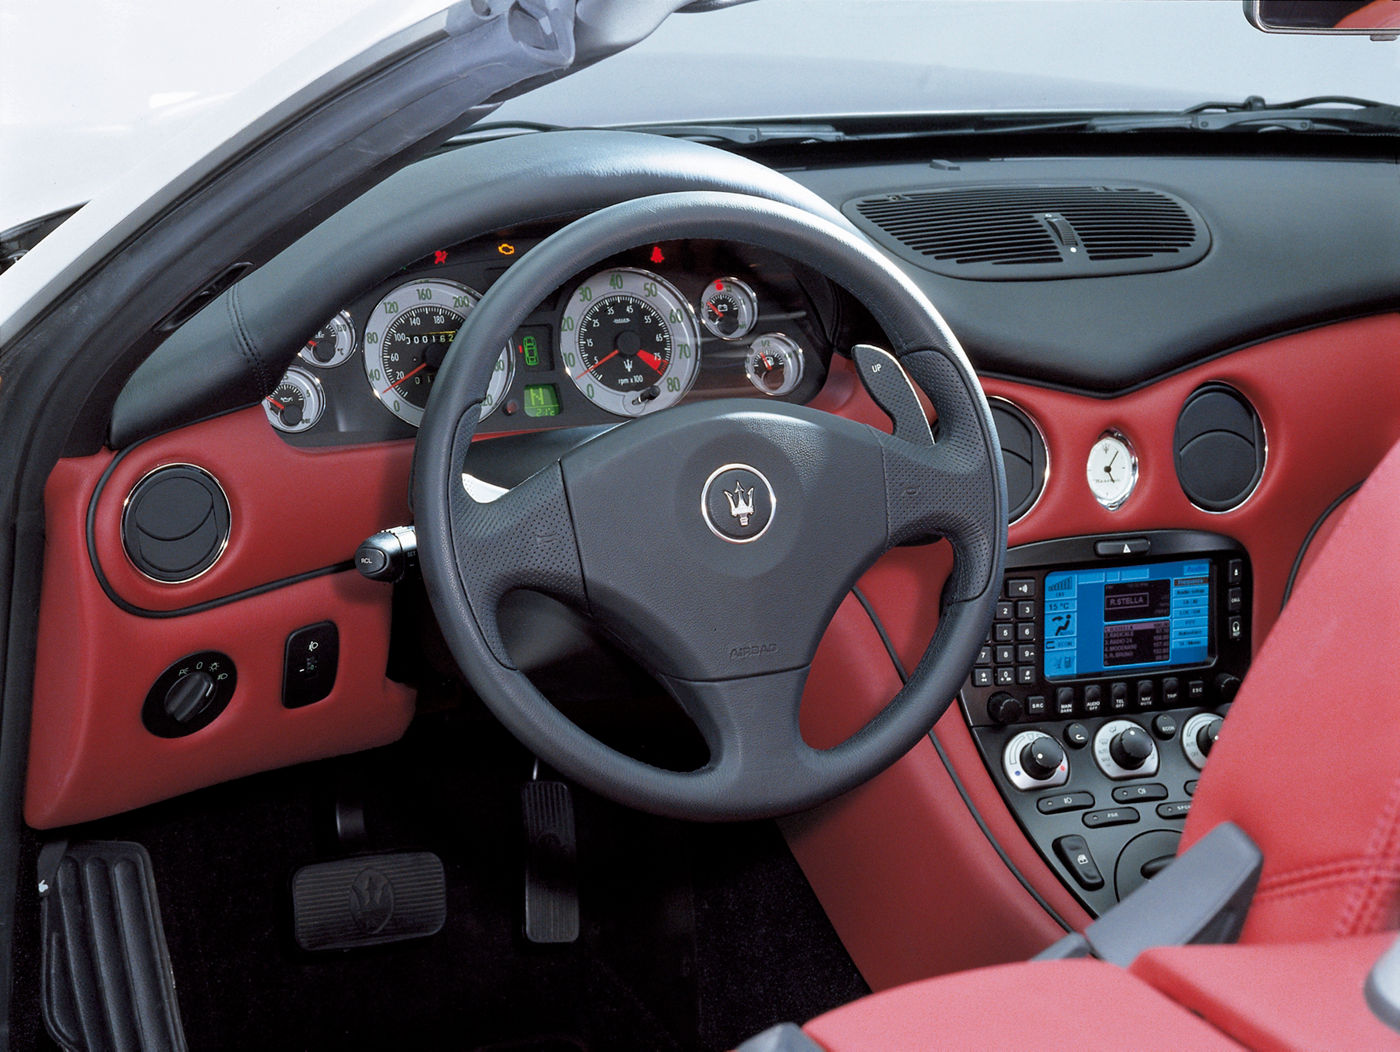 2001 Maserati Spyder - interior view of the 2-seater convertible